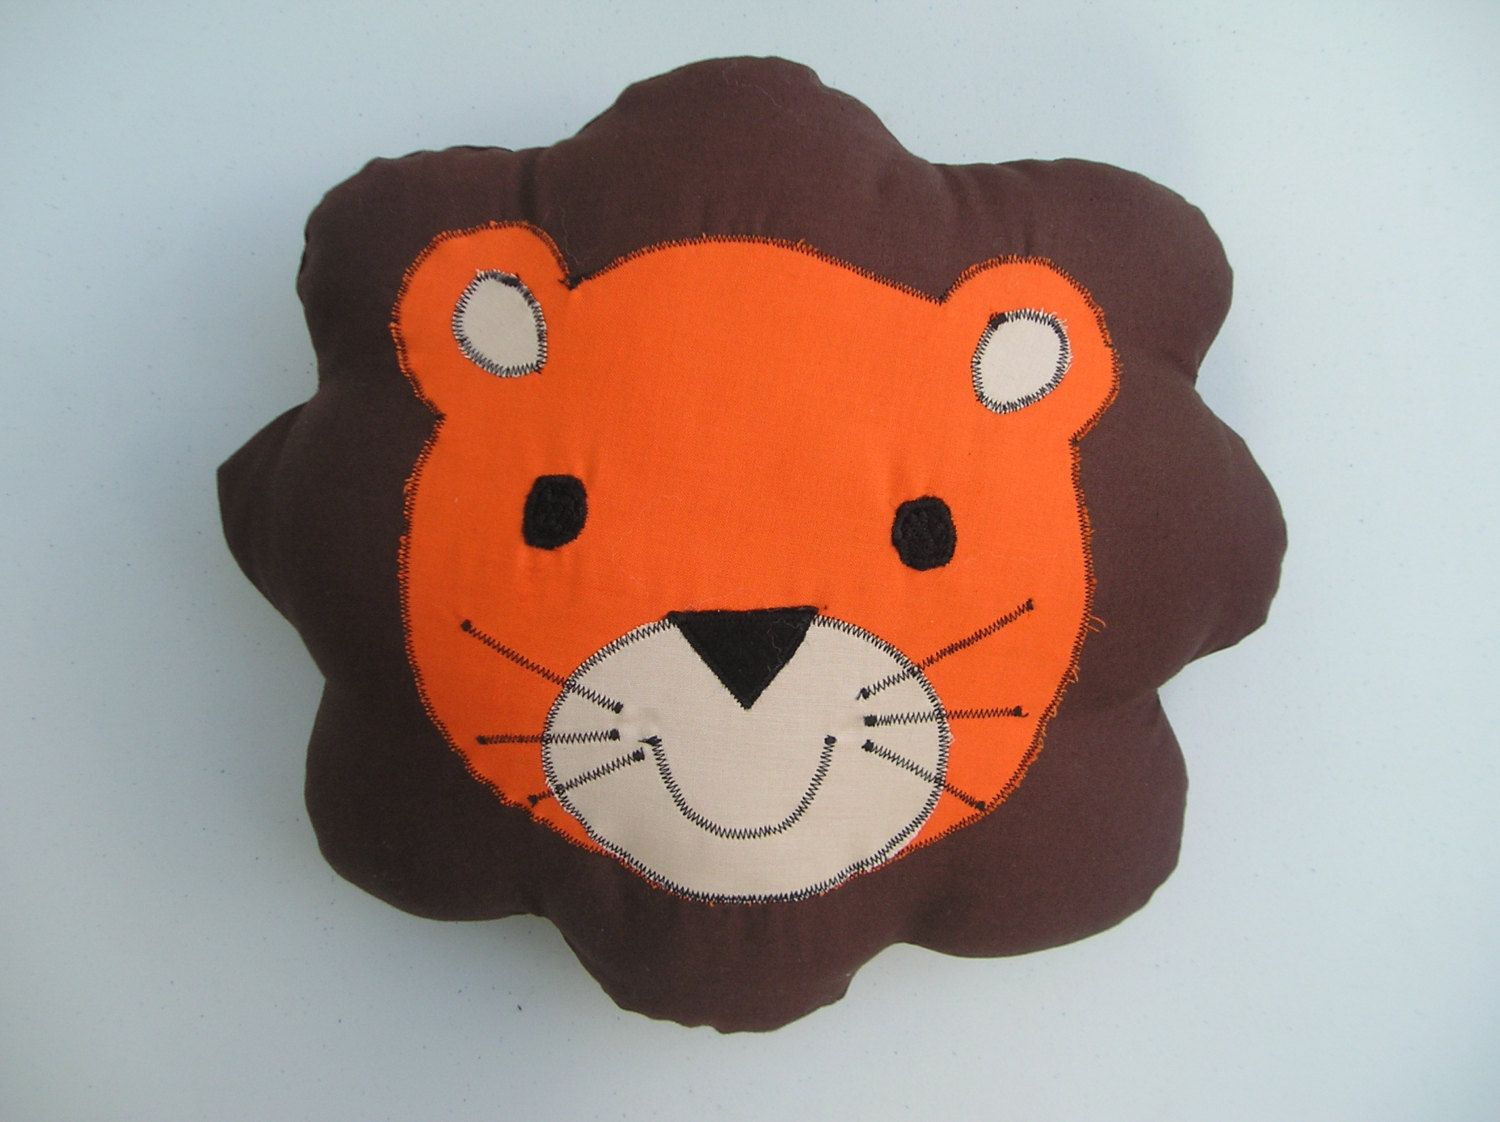 Taf toys car seat toy  Lion Pillow  via Etsy   Kids stuffs  kids rooms